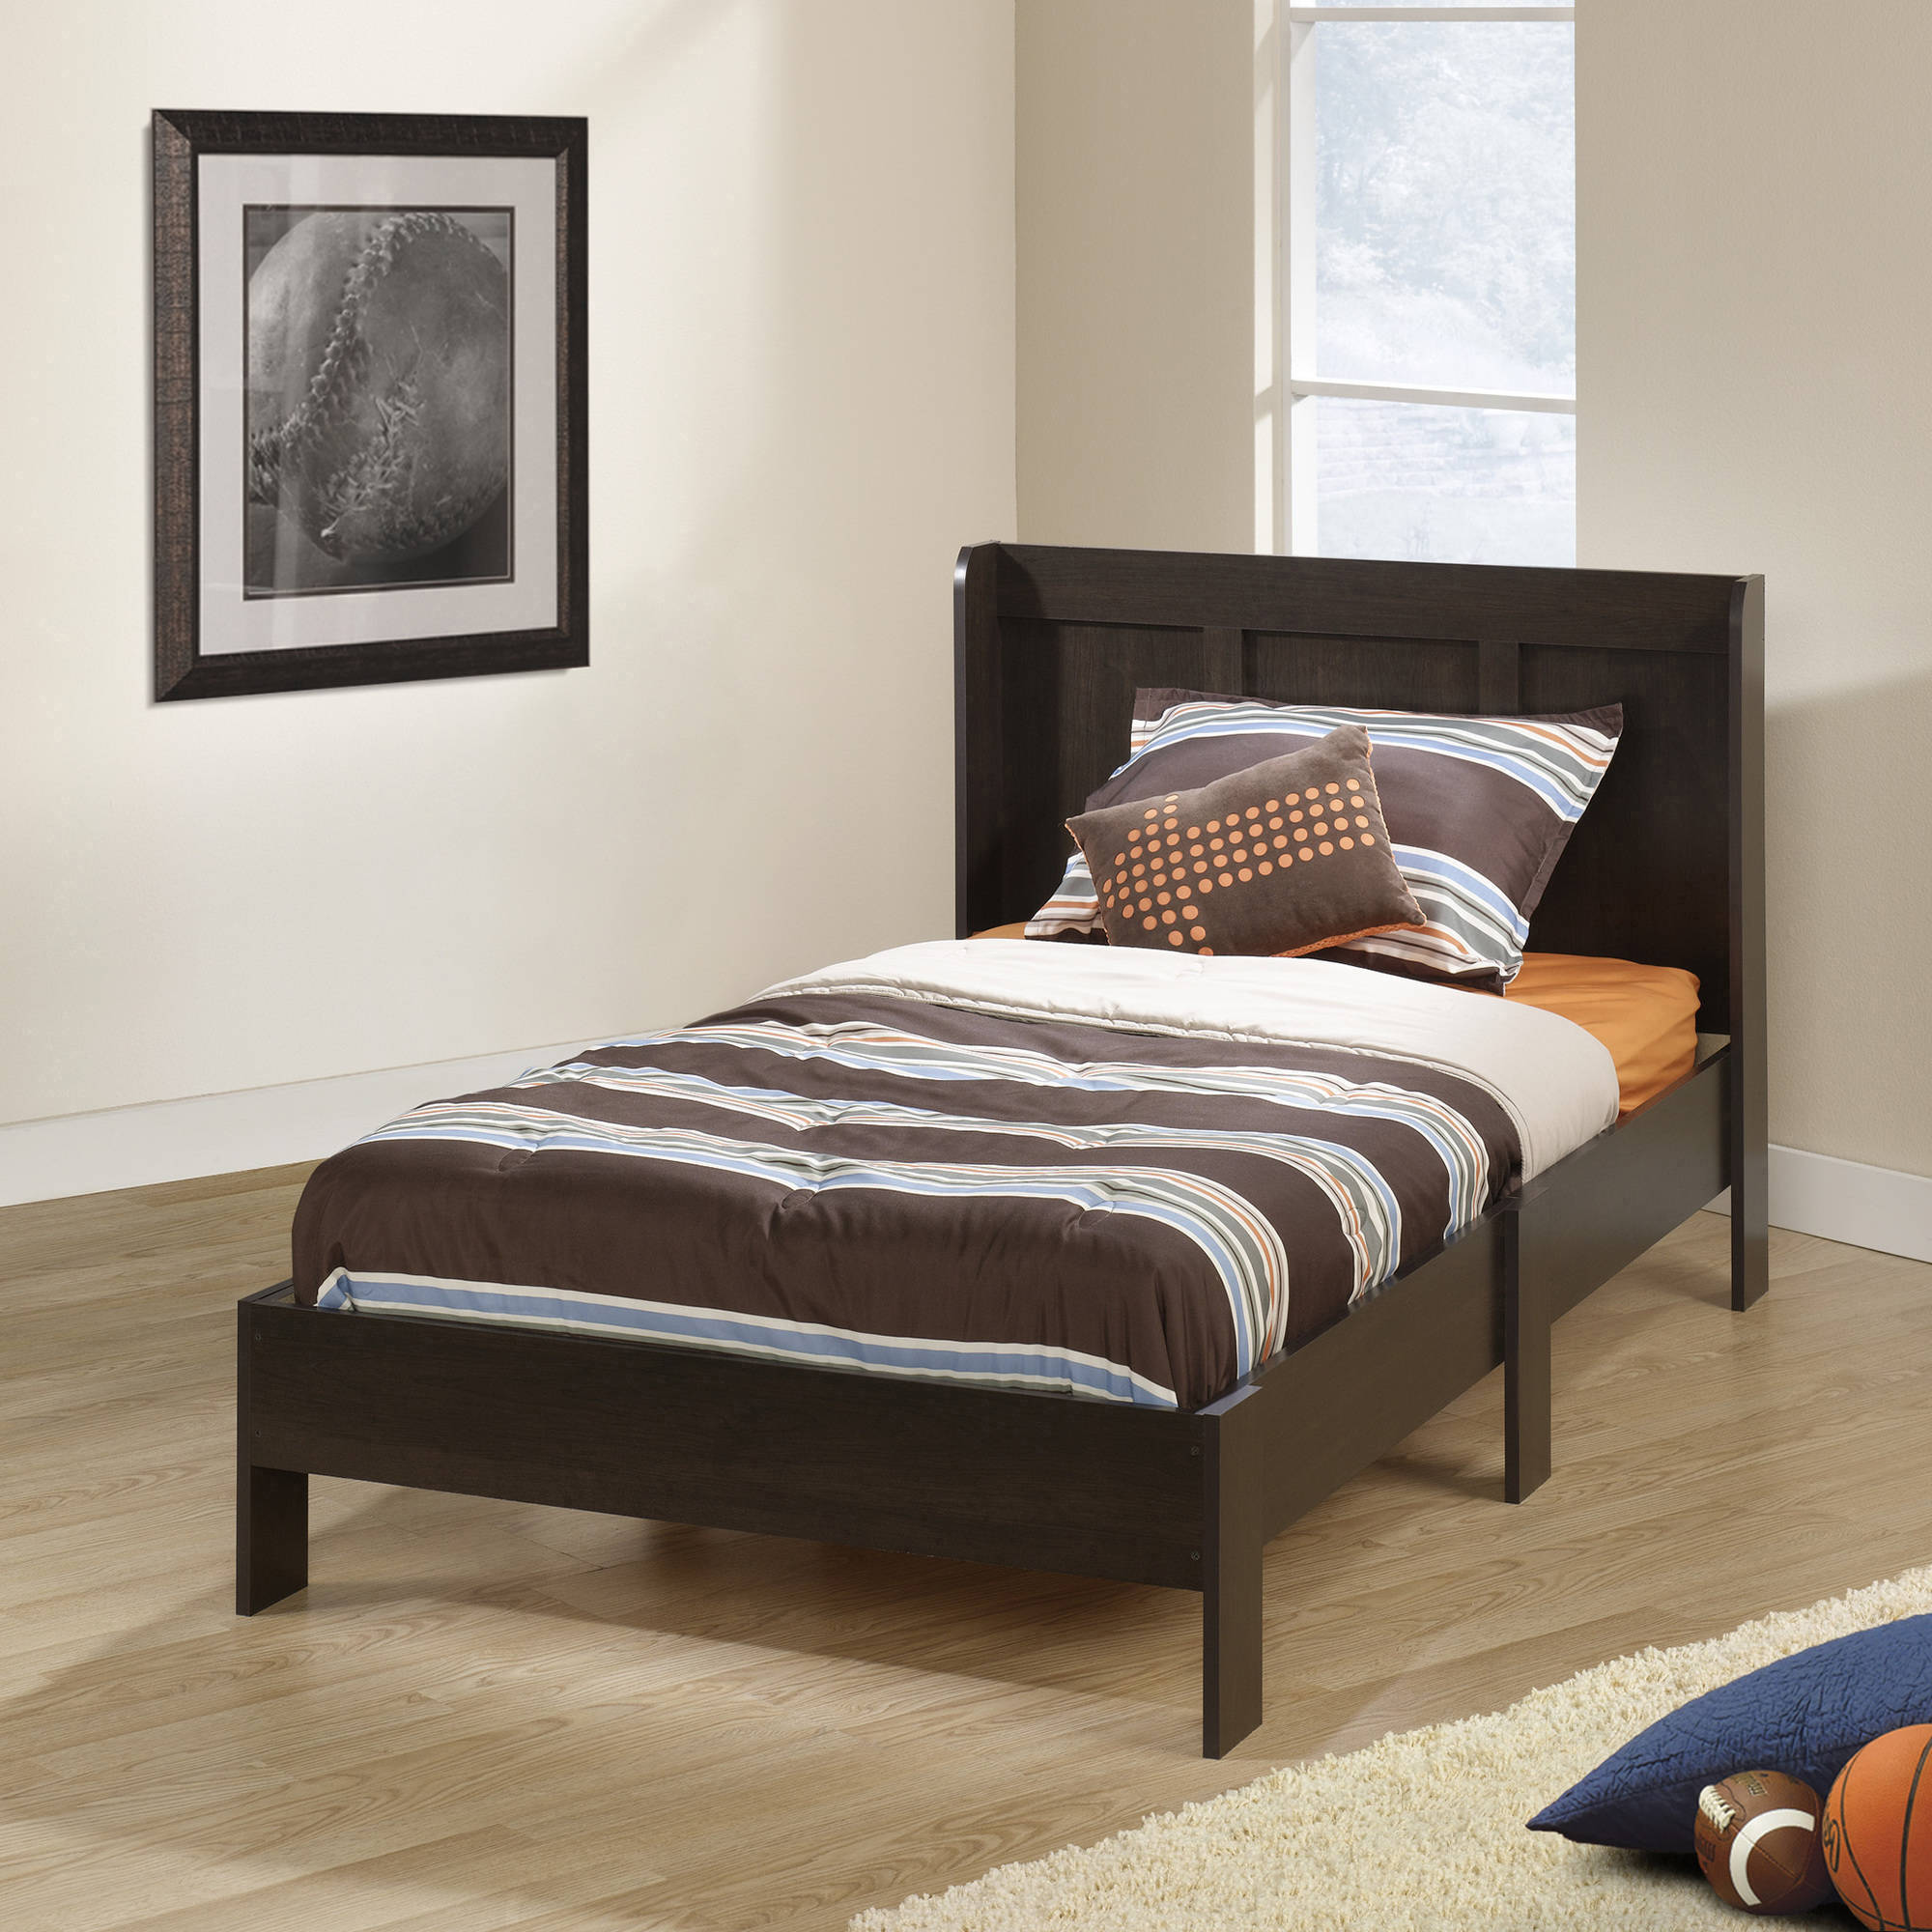 Best Twin Platform Bed Frame Collection